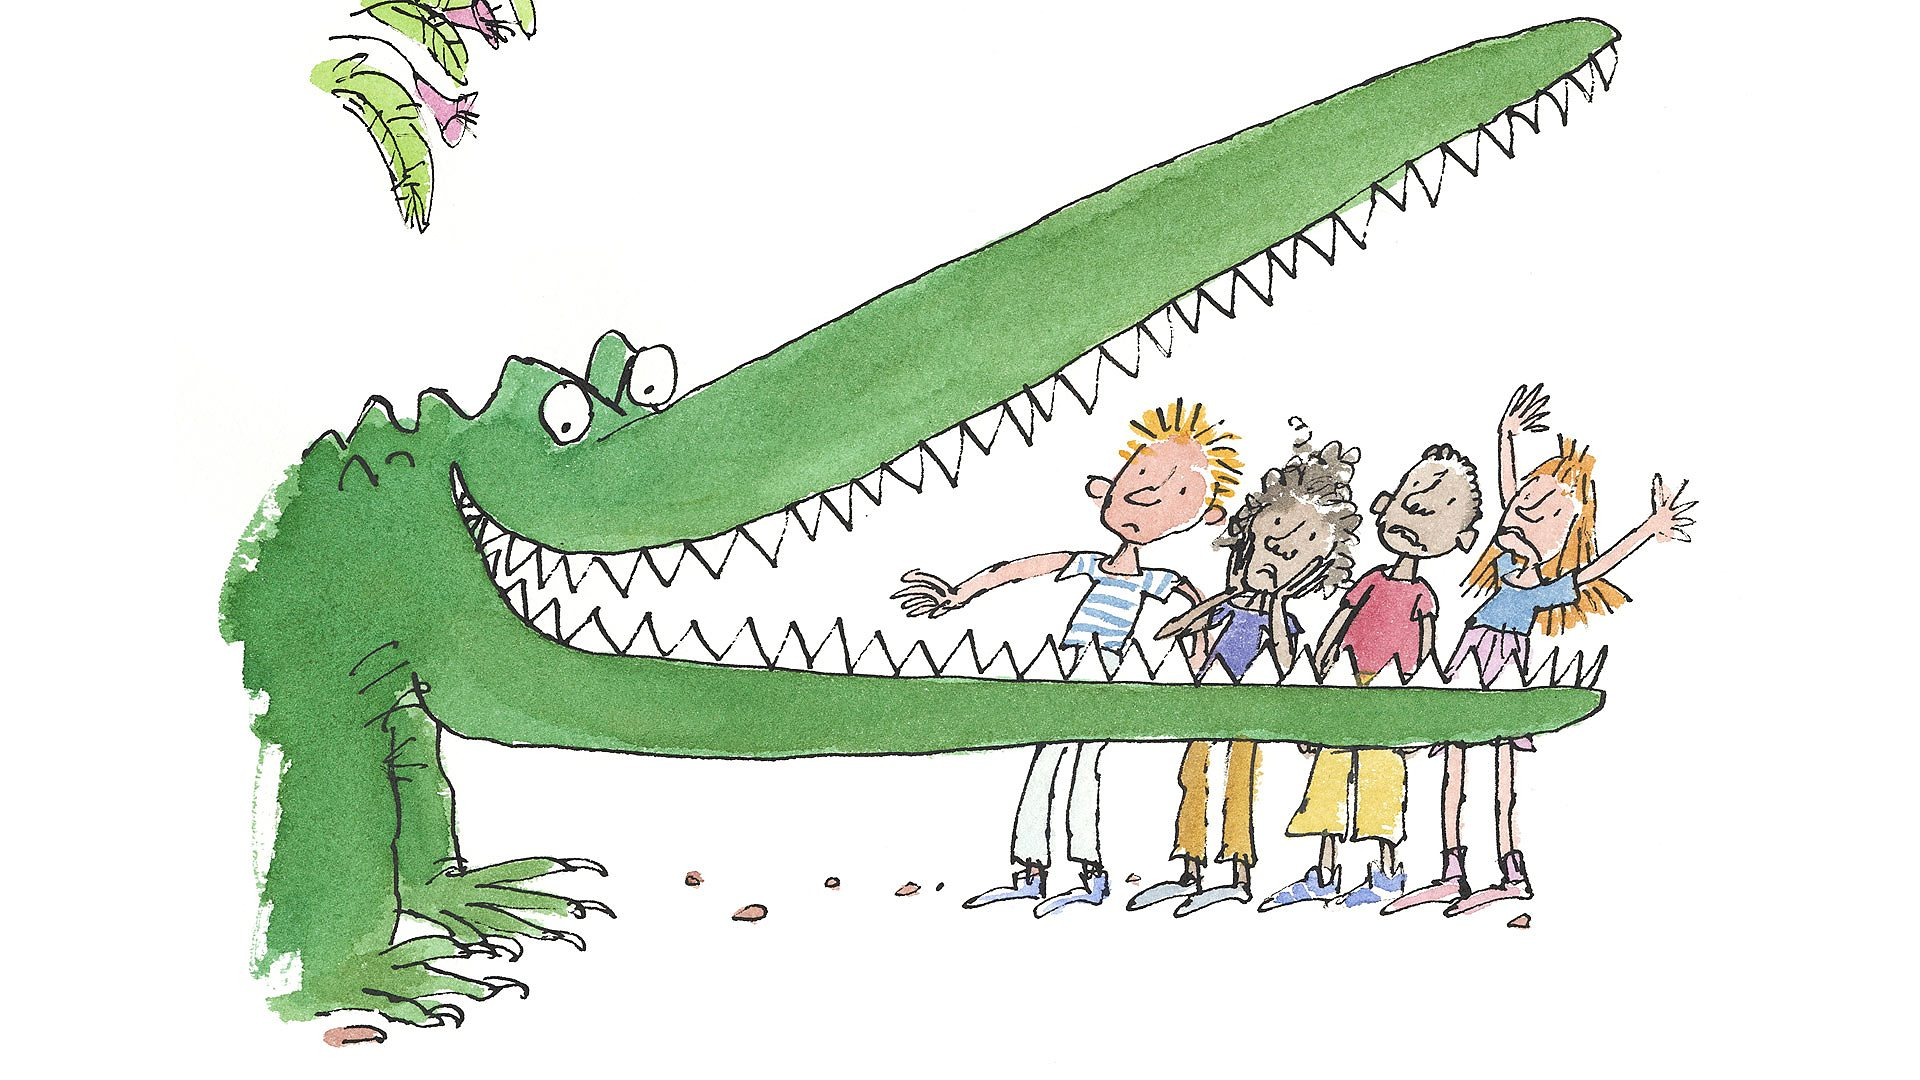 BBC - Quentin Blake on working with a big friendly giant